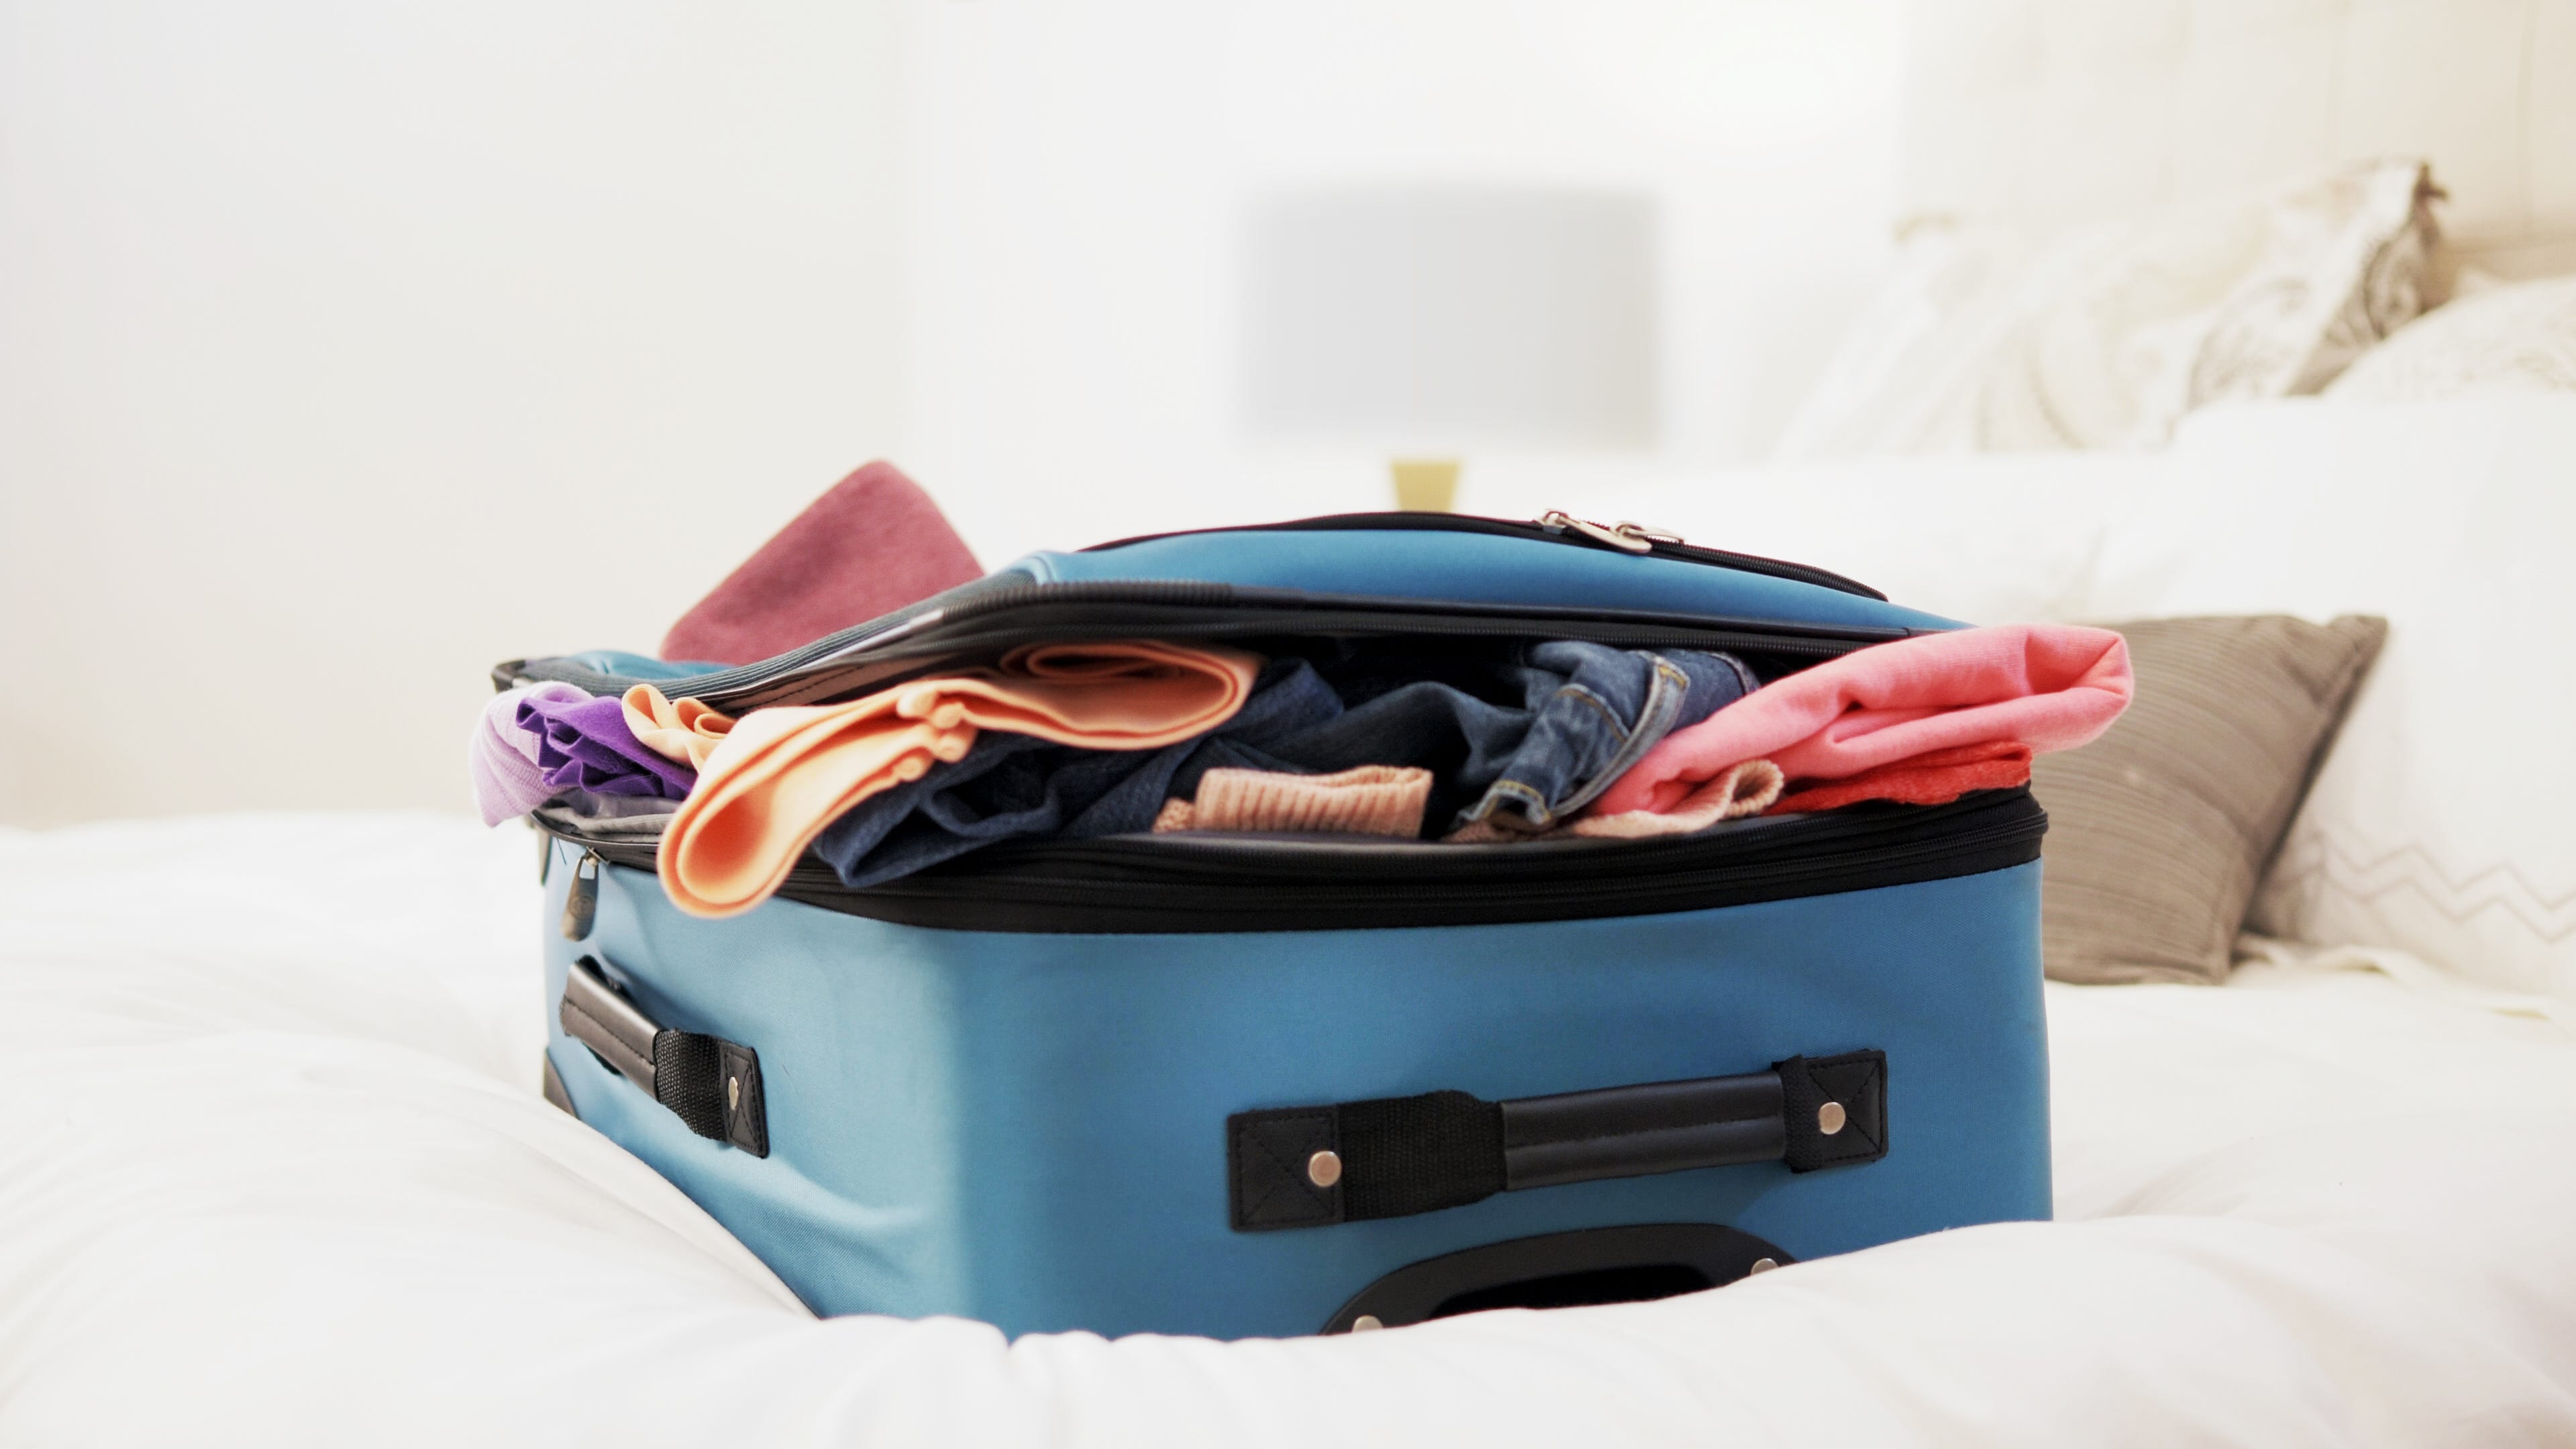 If you don't have the budget for travel clothes, you can make smarter shopping decisions. Avoid cotton and denim, which don't travel well, and find a polyester or spandex blend that will withstand the rigors of the road.